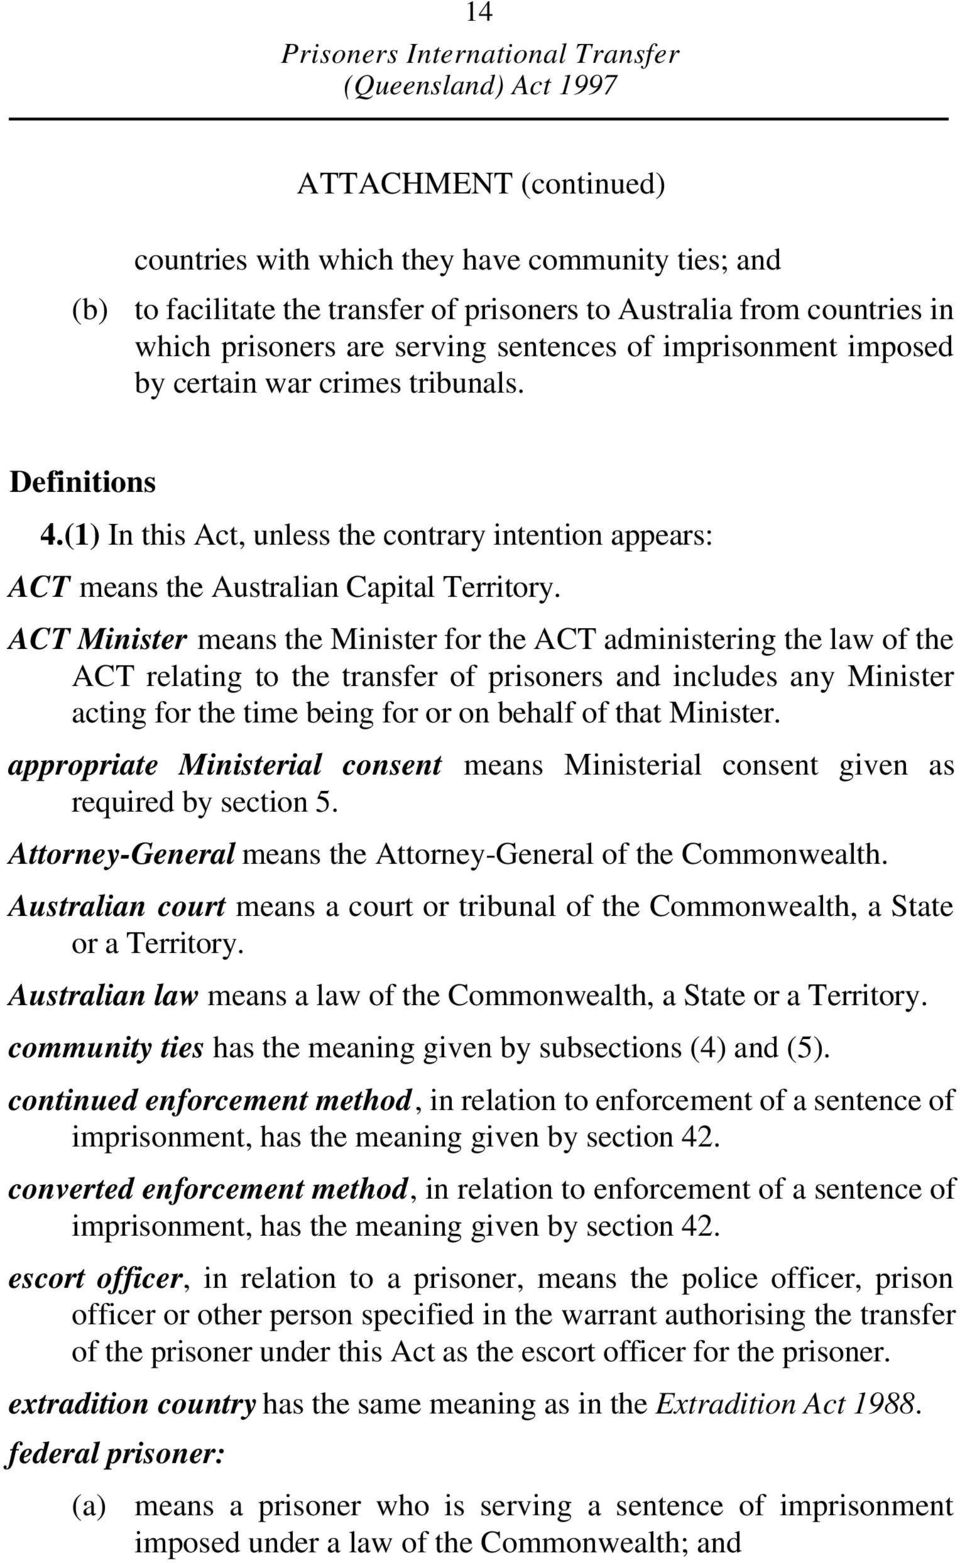 ACT Minister means the Minister for the ACT administering the law of the ACT relating to the transfer of prisoners and includes any Minister acting for the time being for or on behalf of that